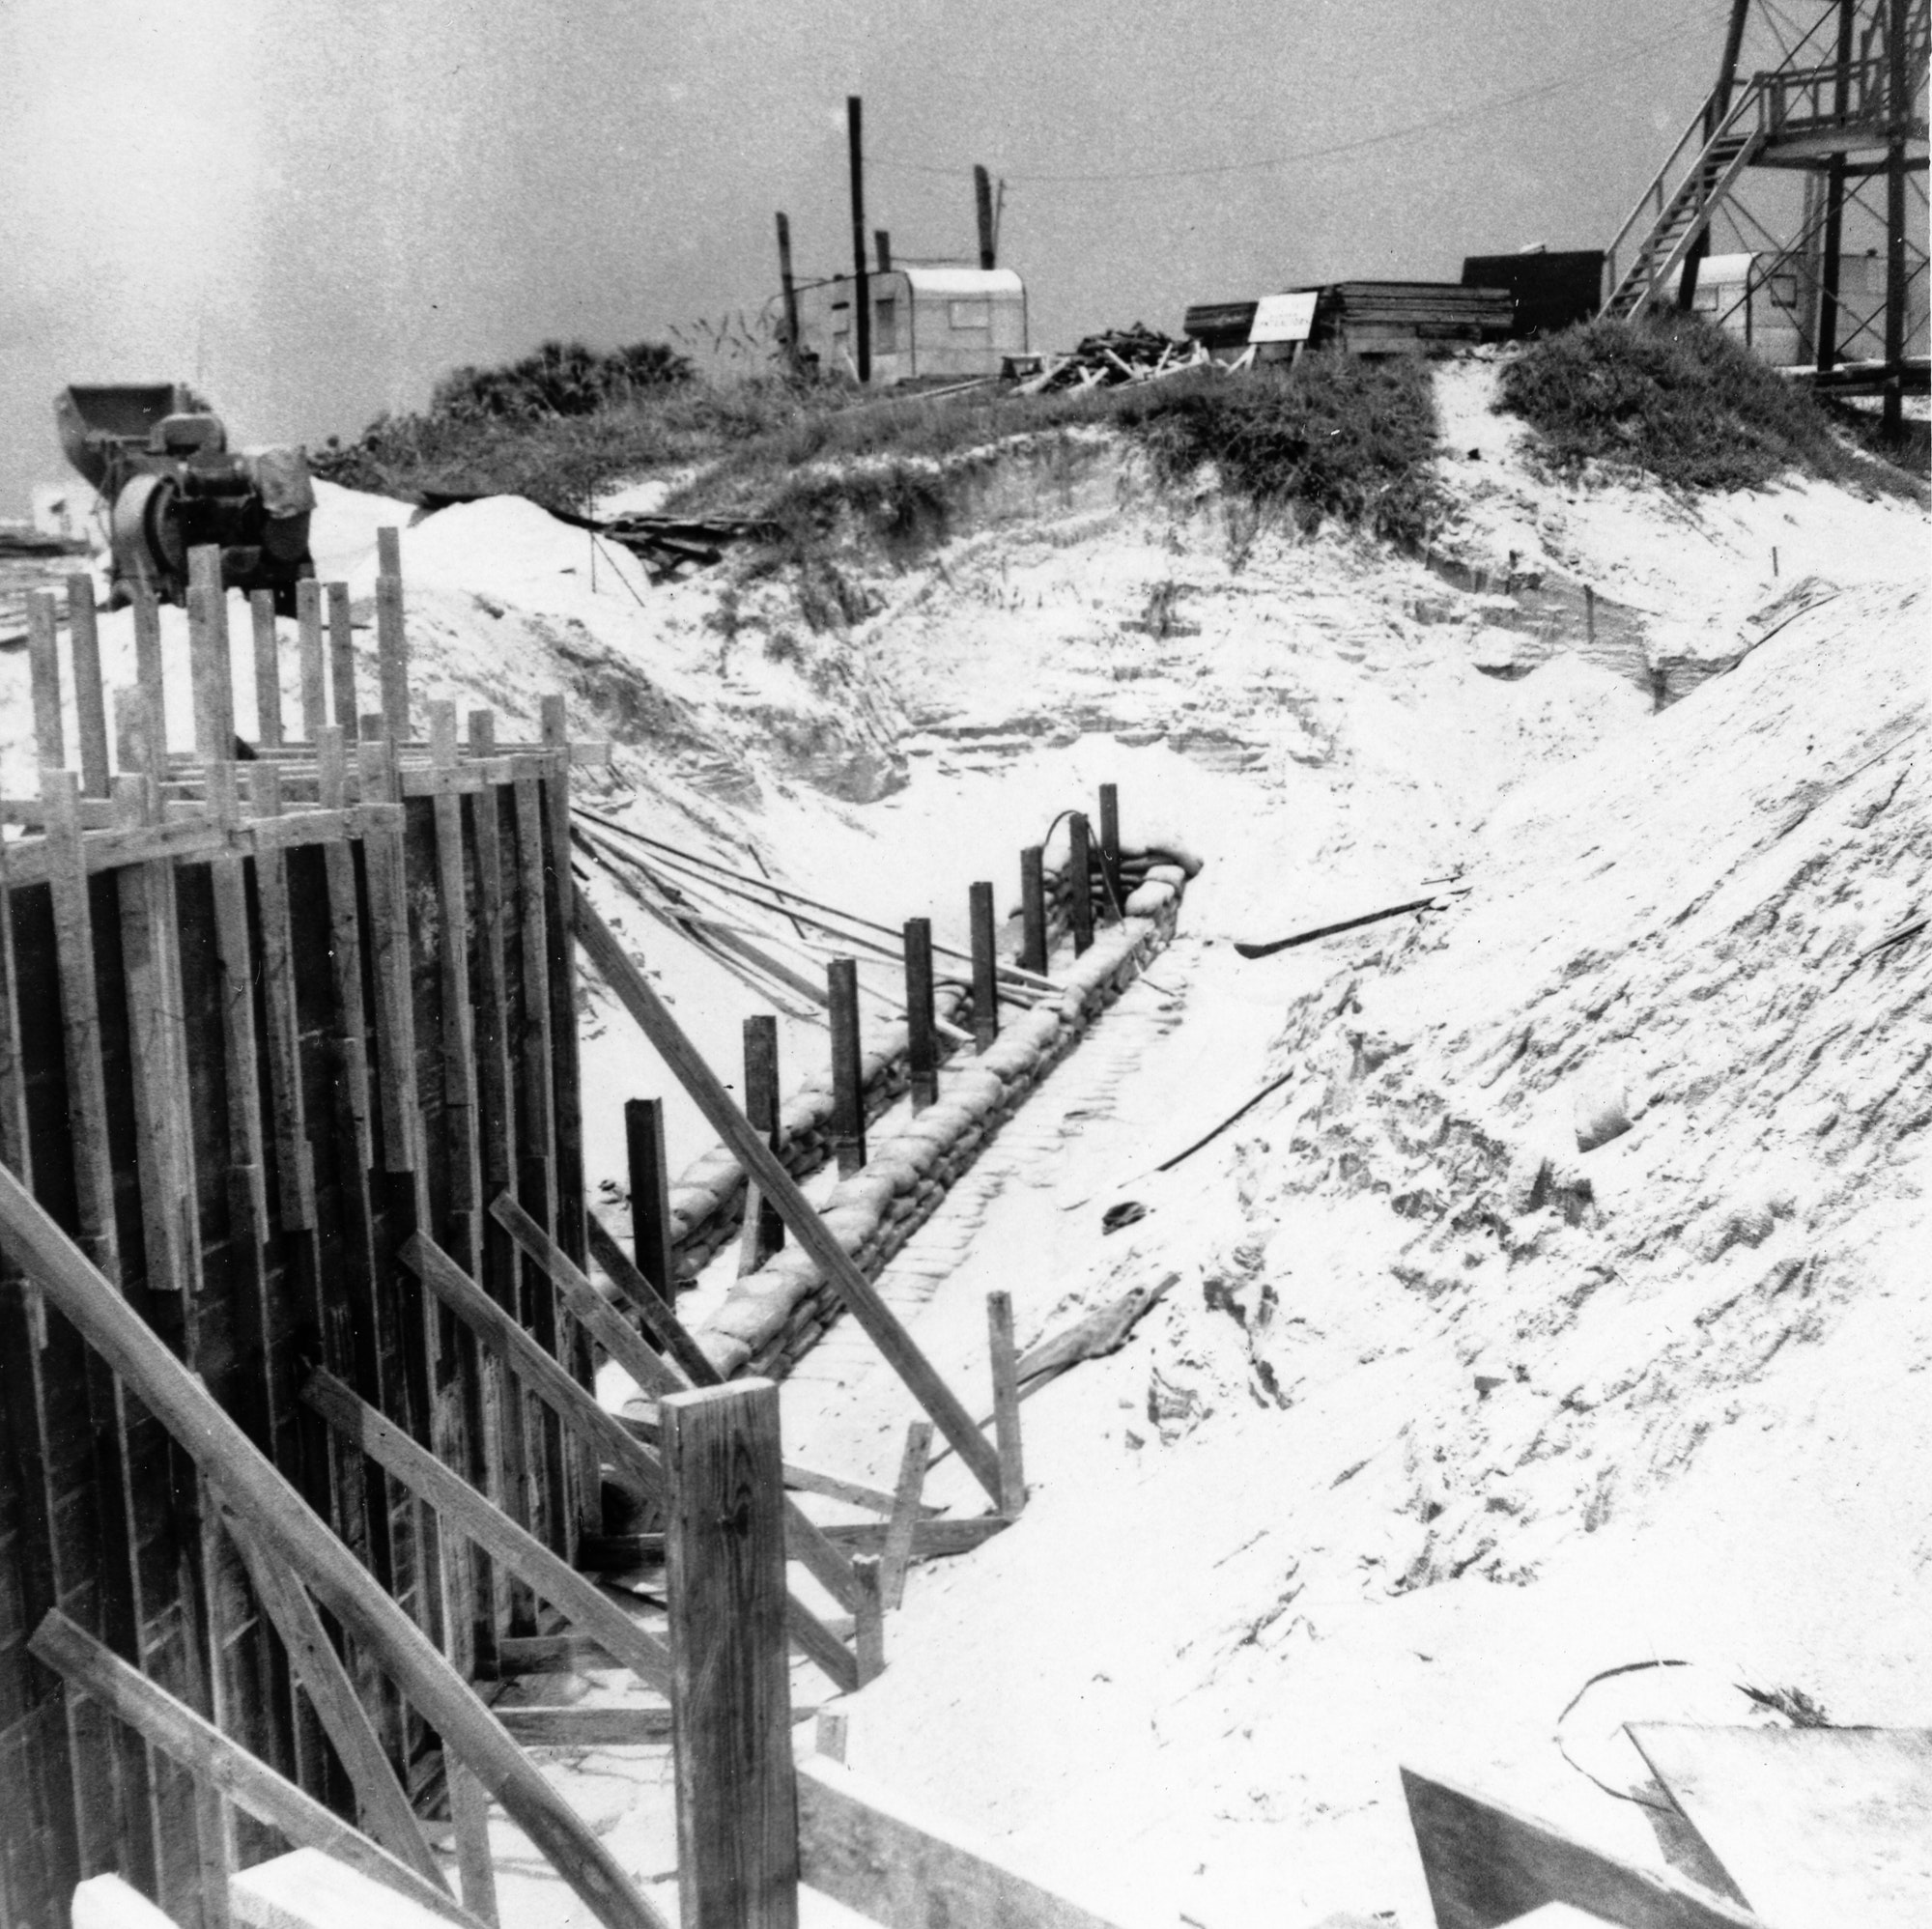 wooden support structure used to begin north jetty construction surrounded by a sand dune